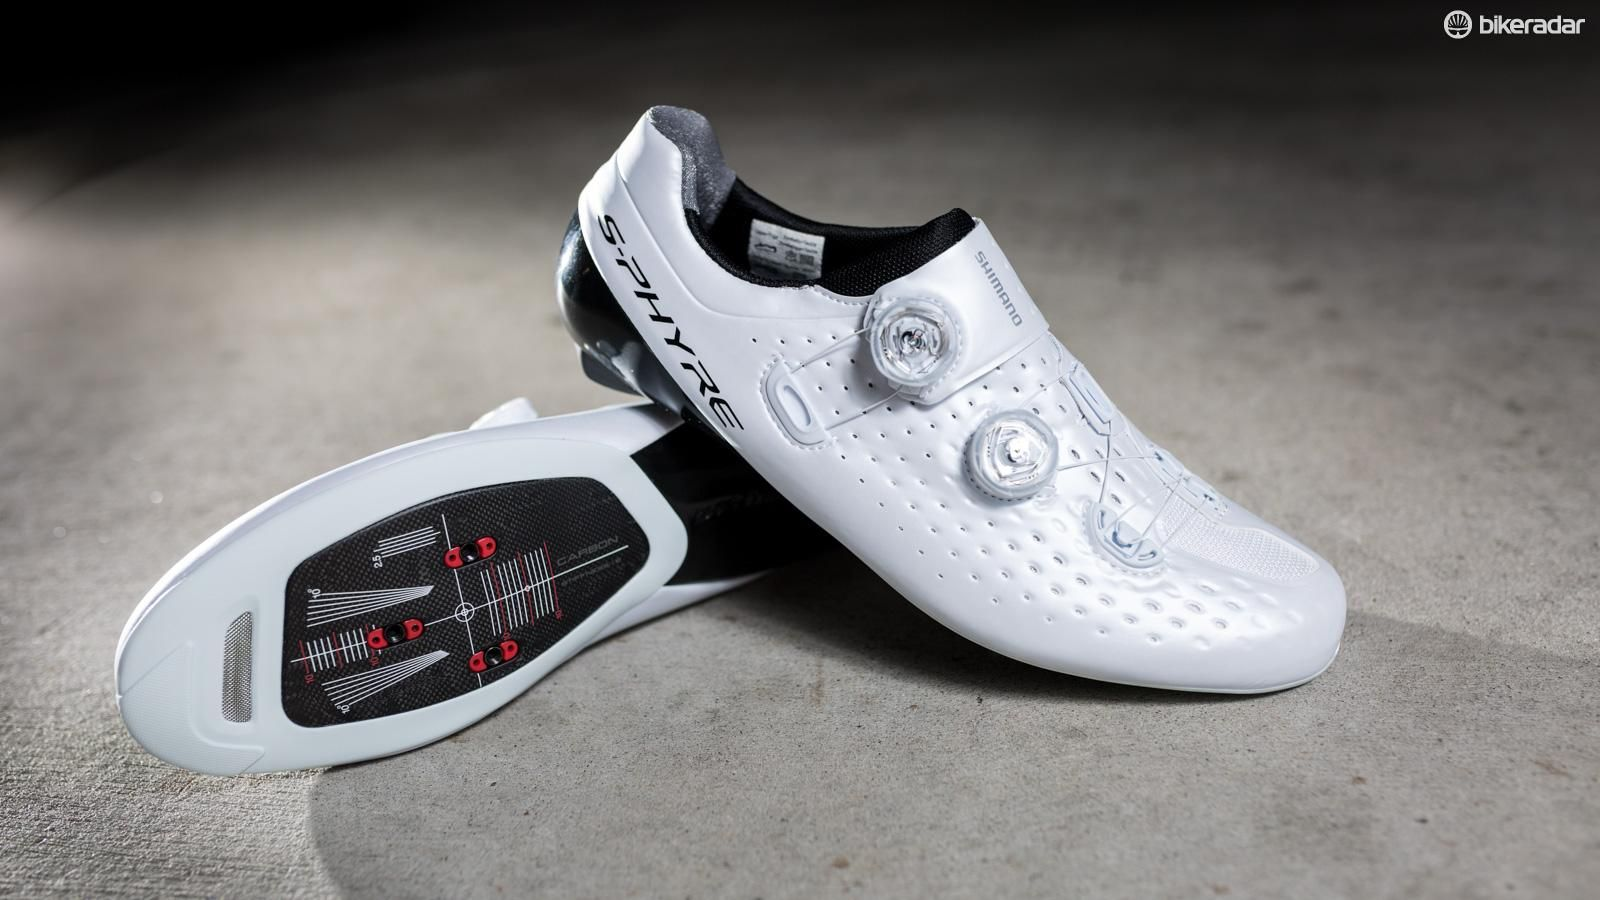 Shimano S Phyre Rc9 First Look Bike Shoes Cycling Shoes Shoes